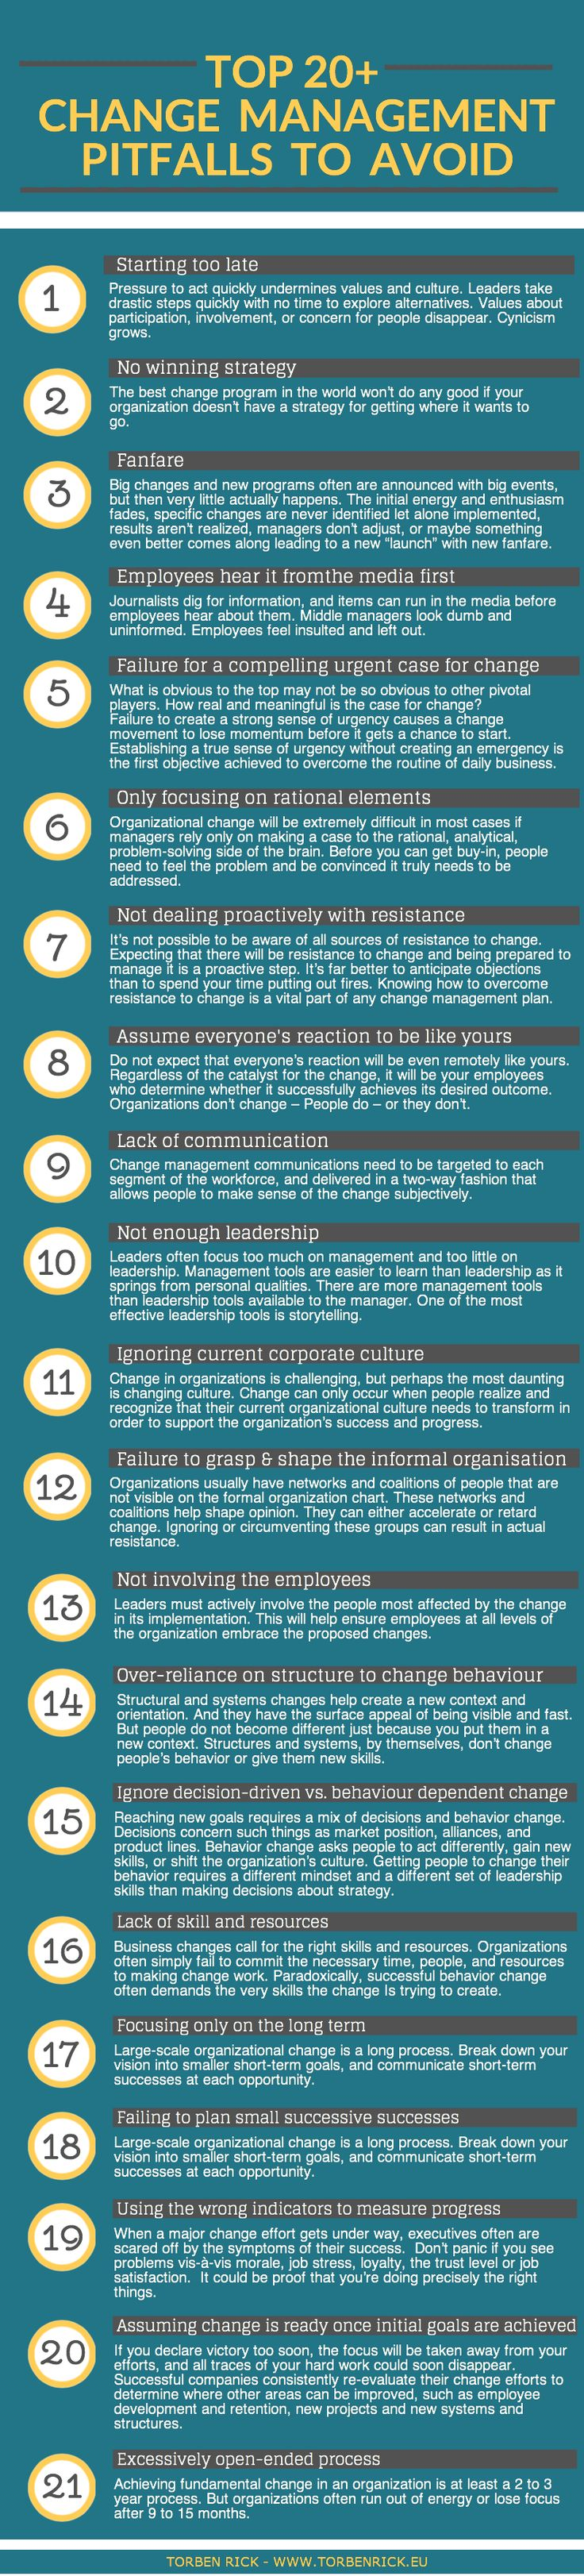 Top 20 change management pitfalls to avoid (infographic)